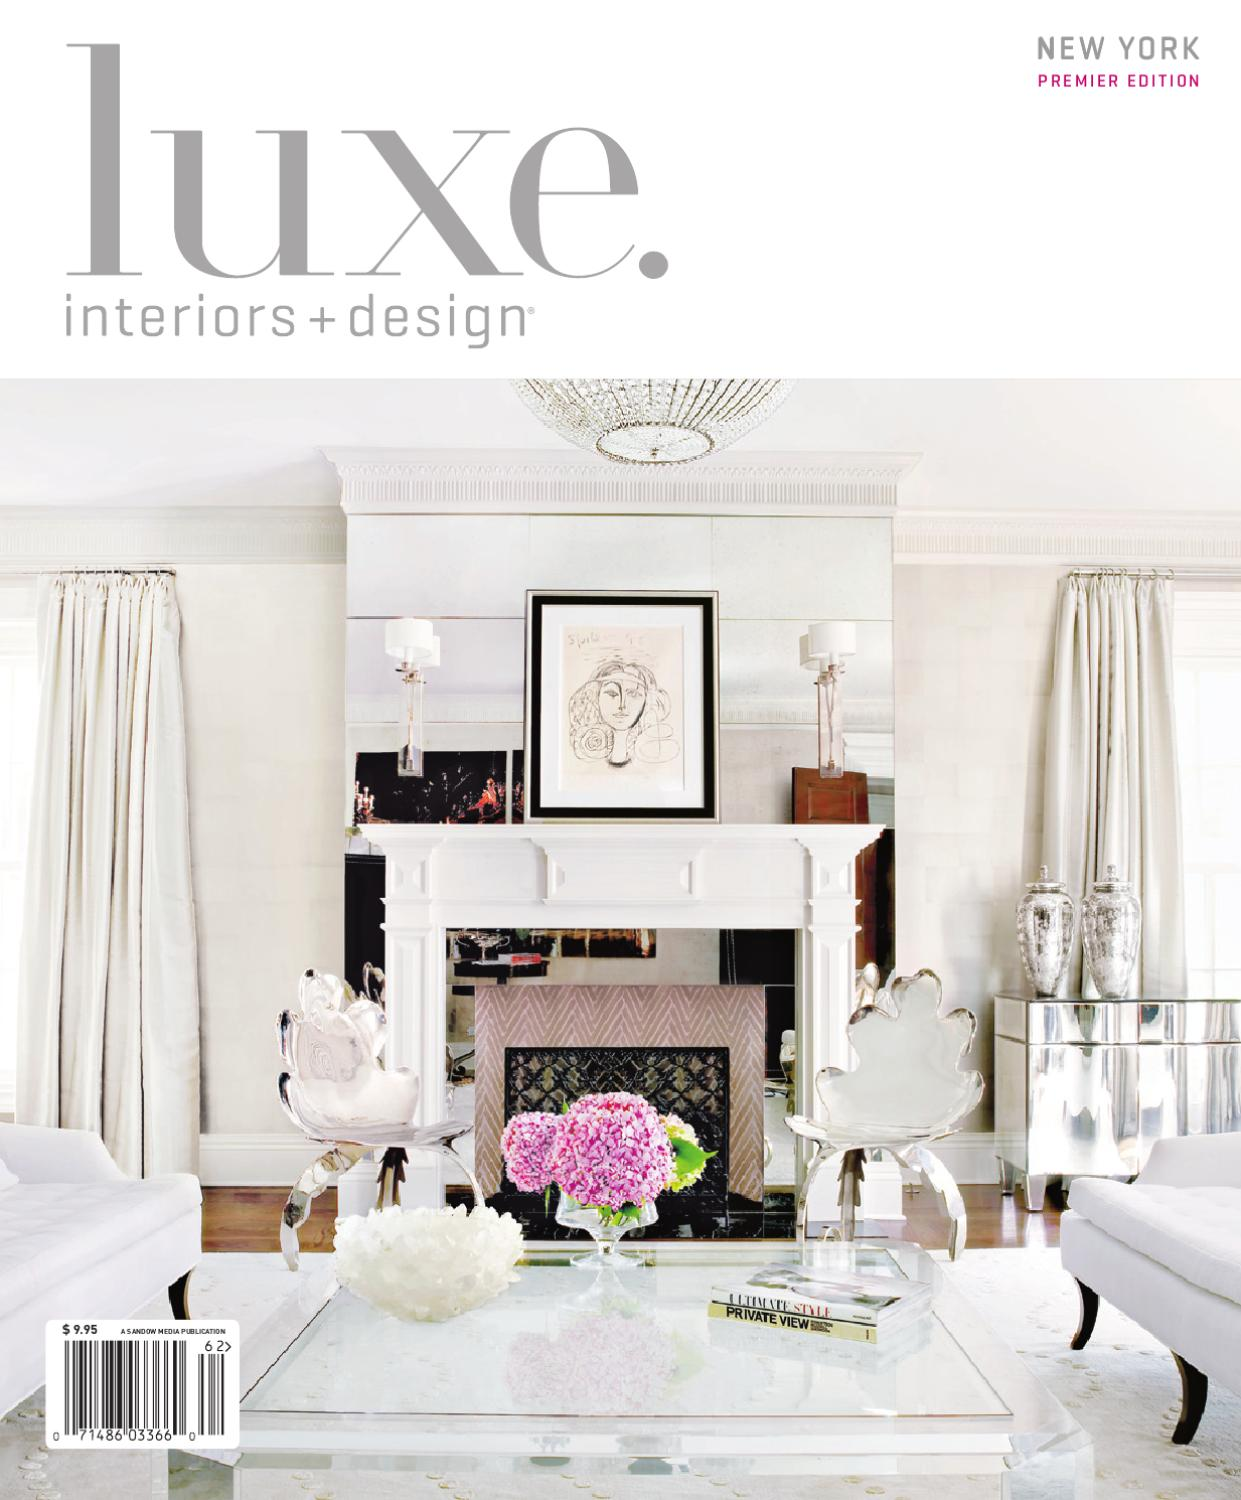 Luxe interior design new york by sandow media issuu for Luxe furniture and design